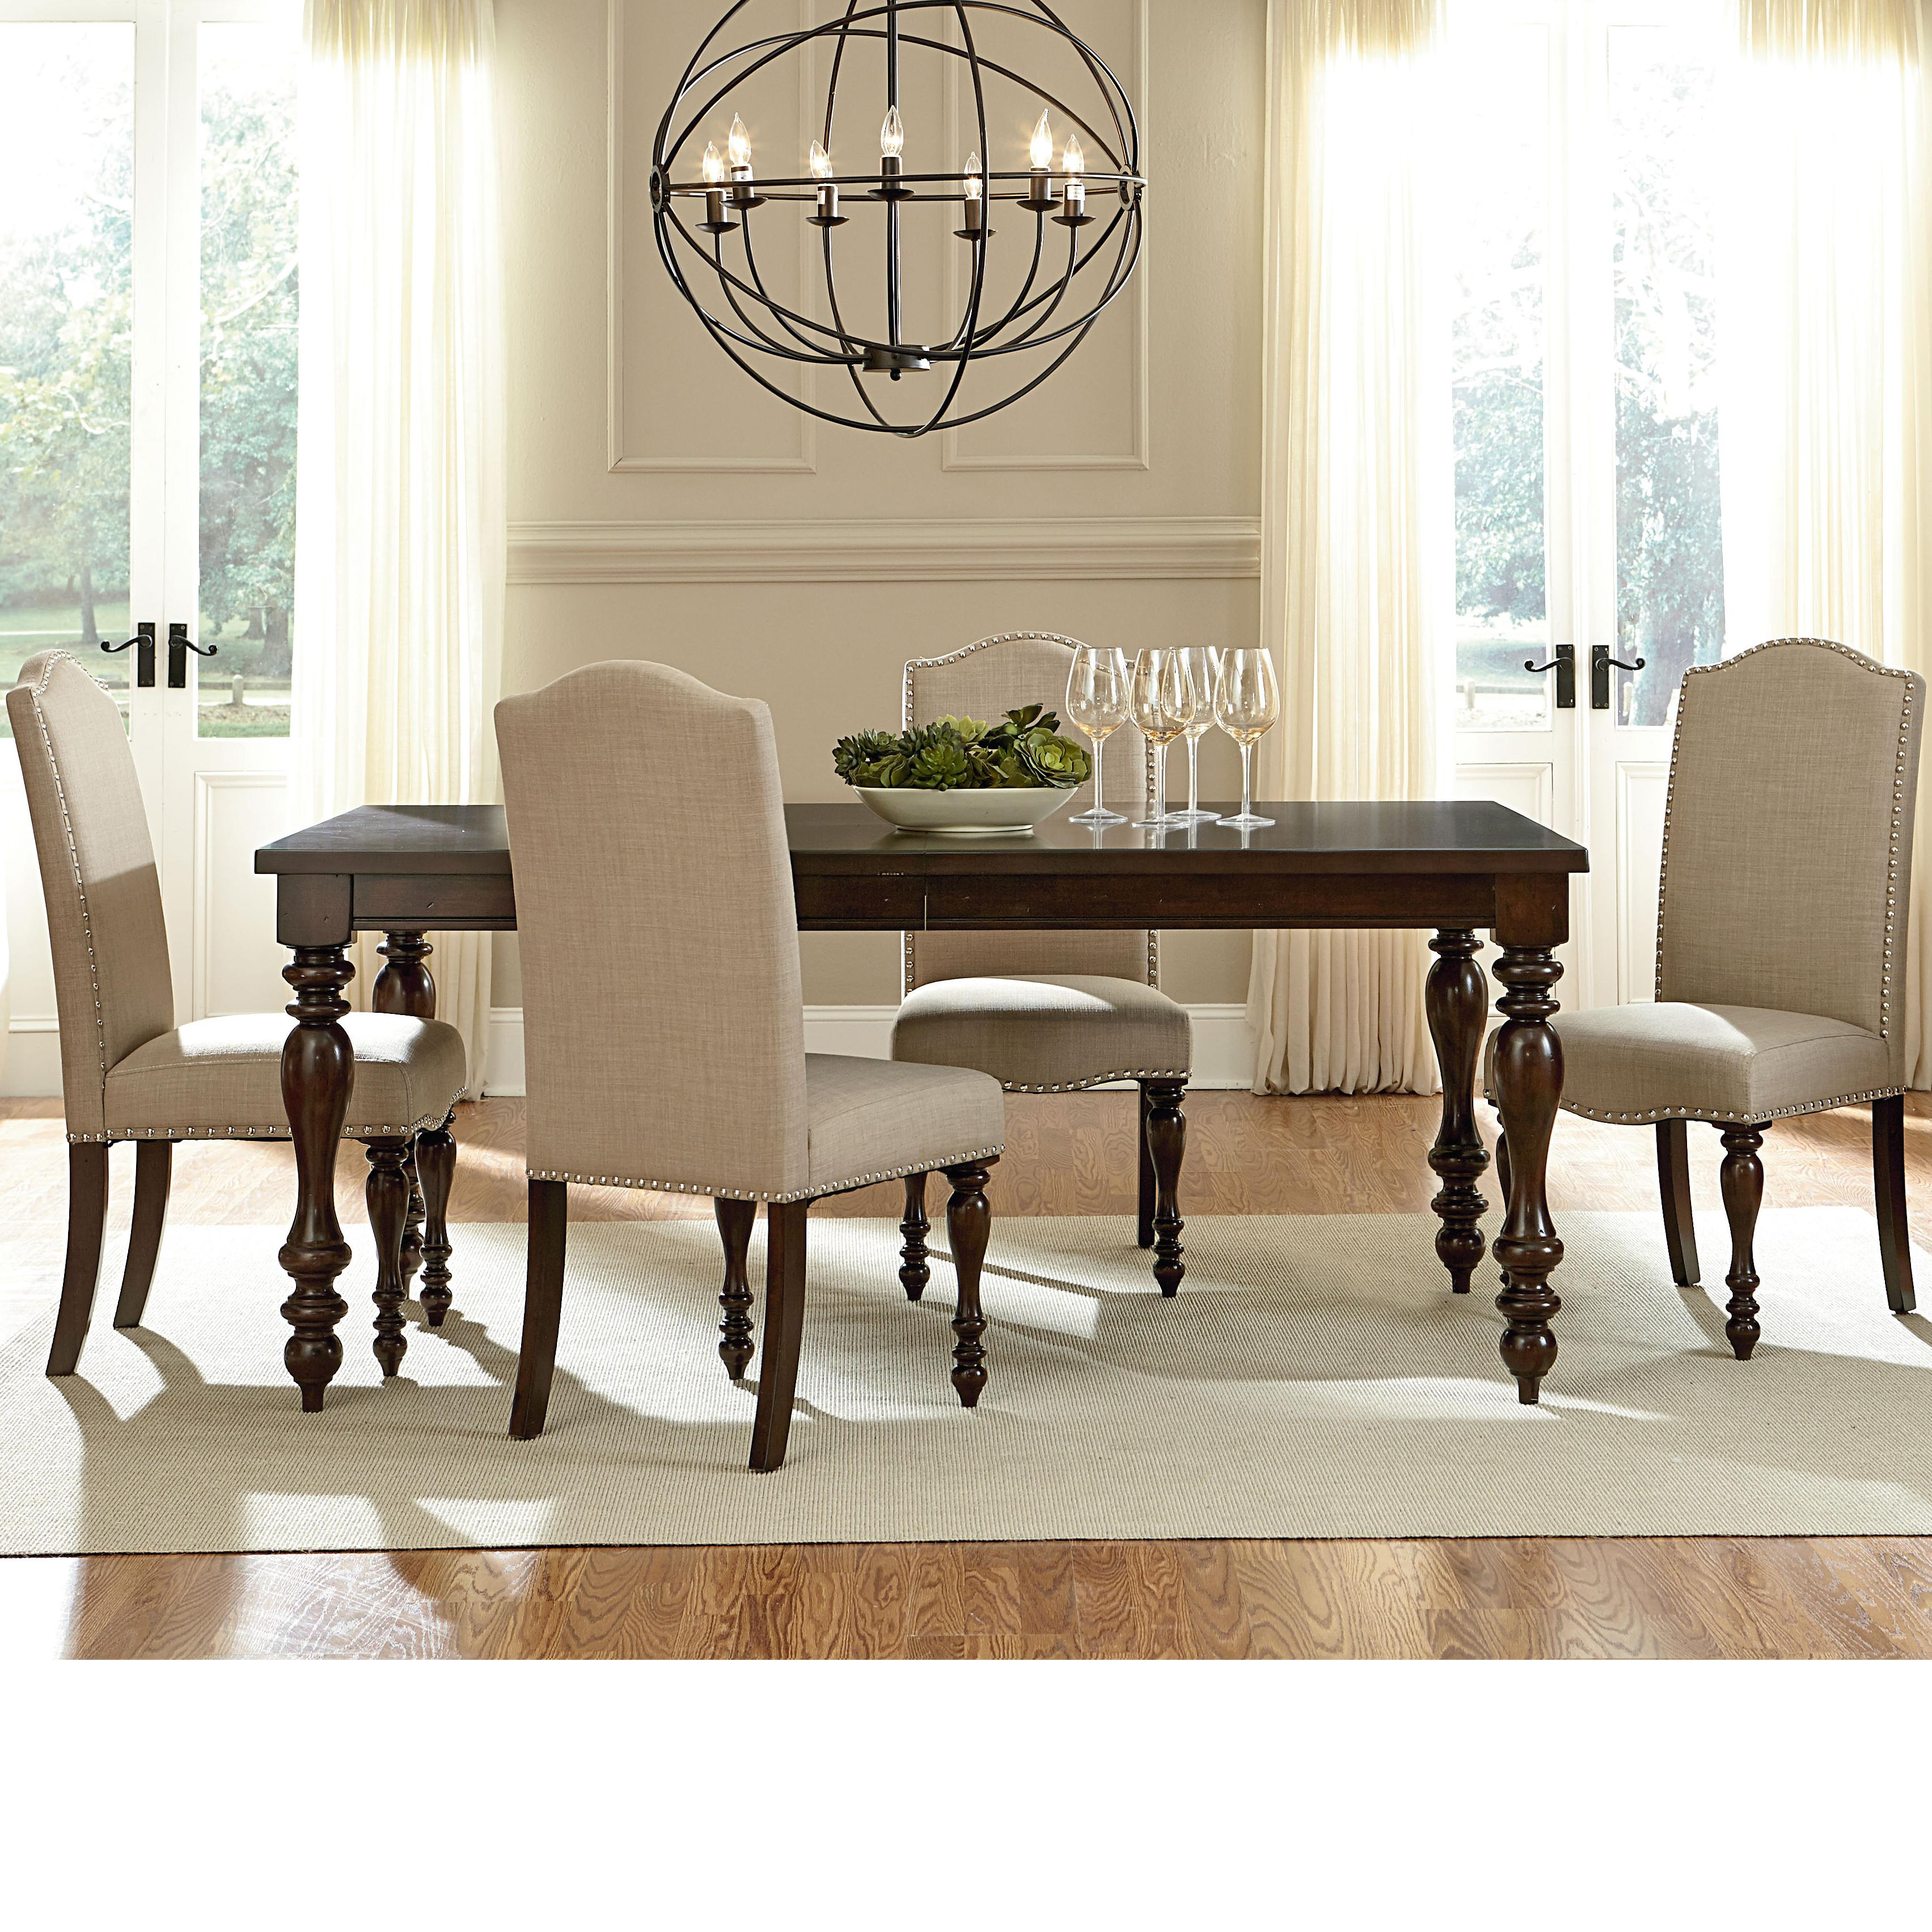 Standard Furniture McGregor 17721 Dining Table With Turned